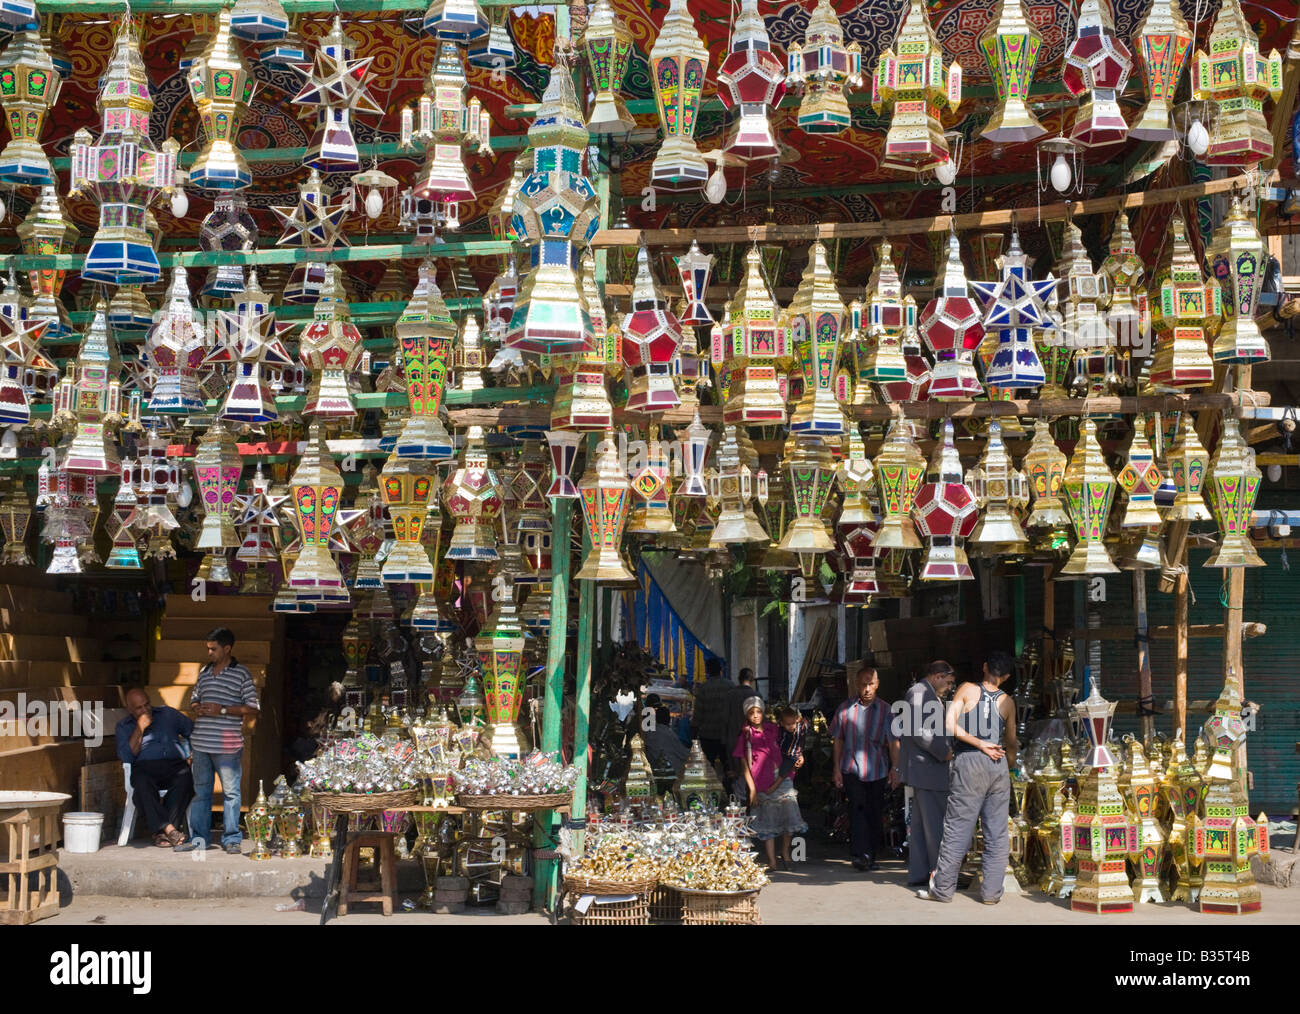 Ramadan lanterns for sale, Cairo, Egypt - Stock Image